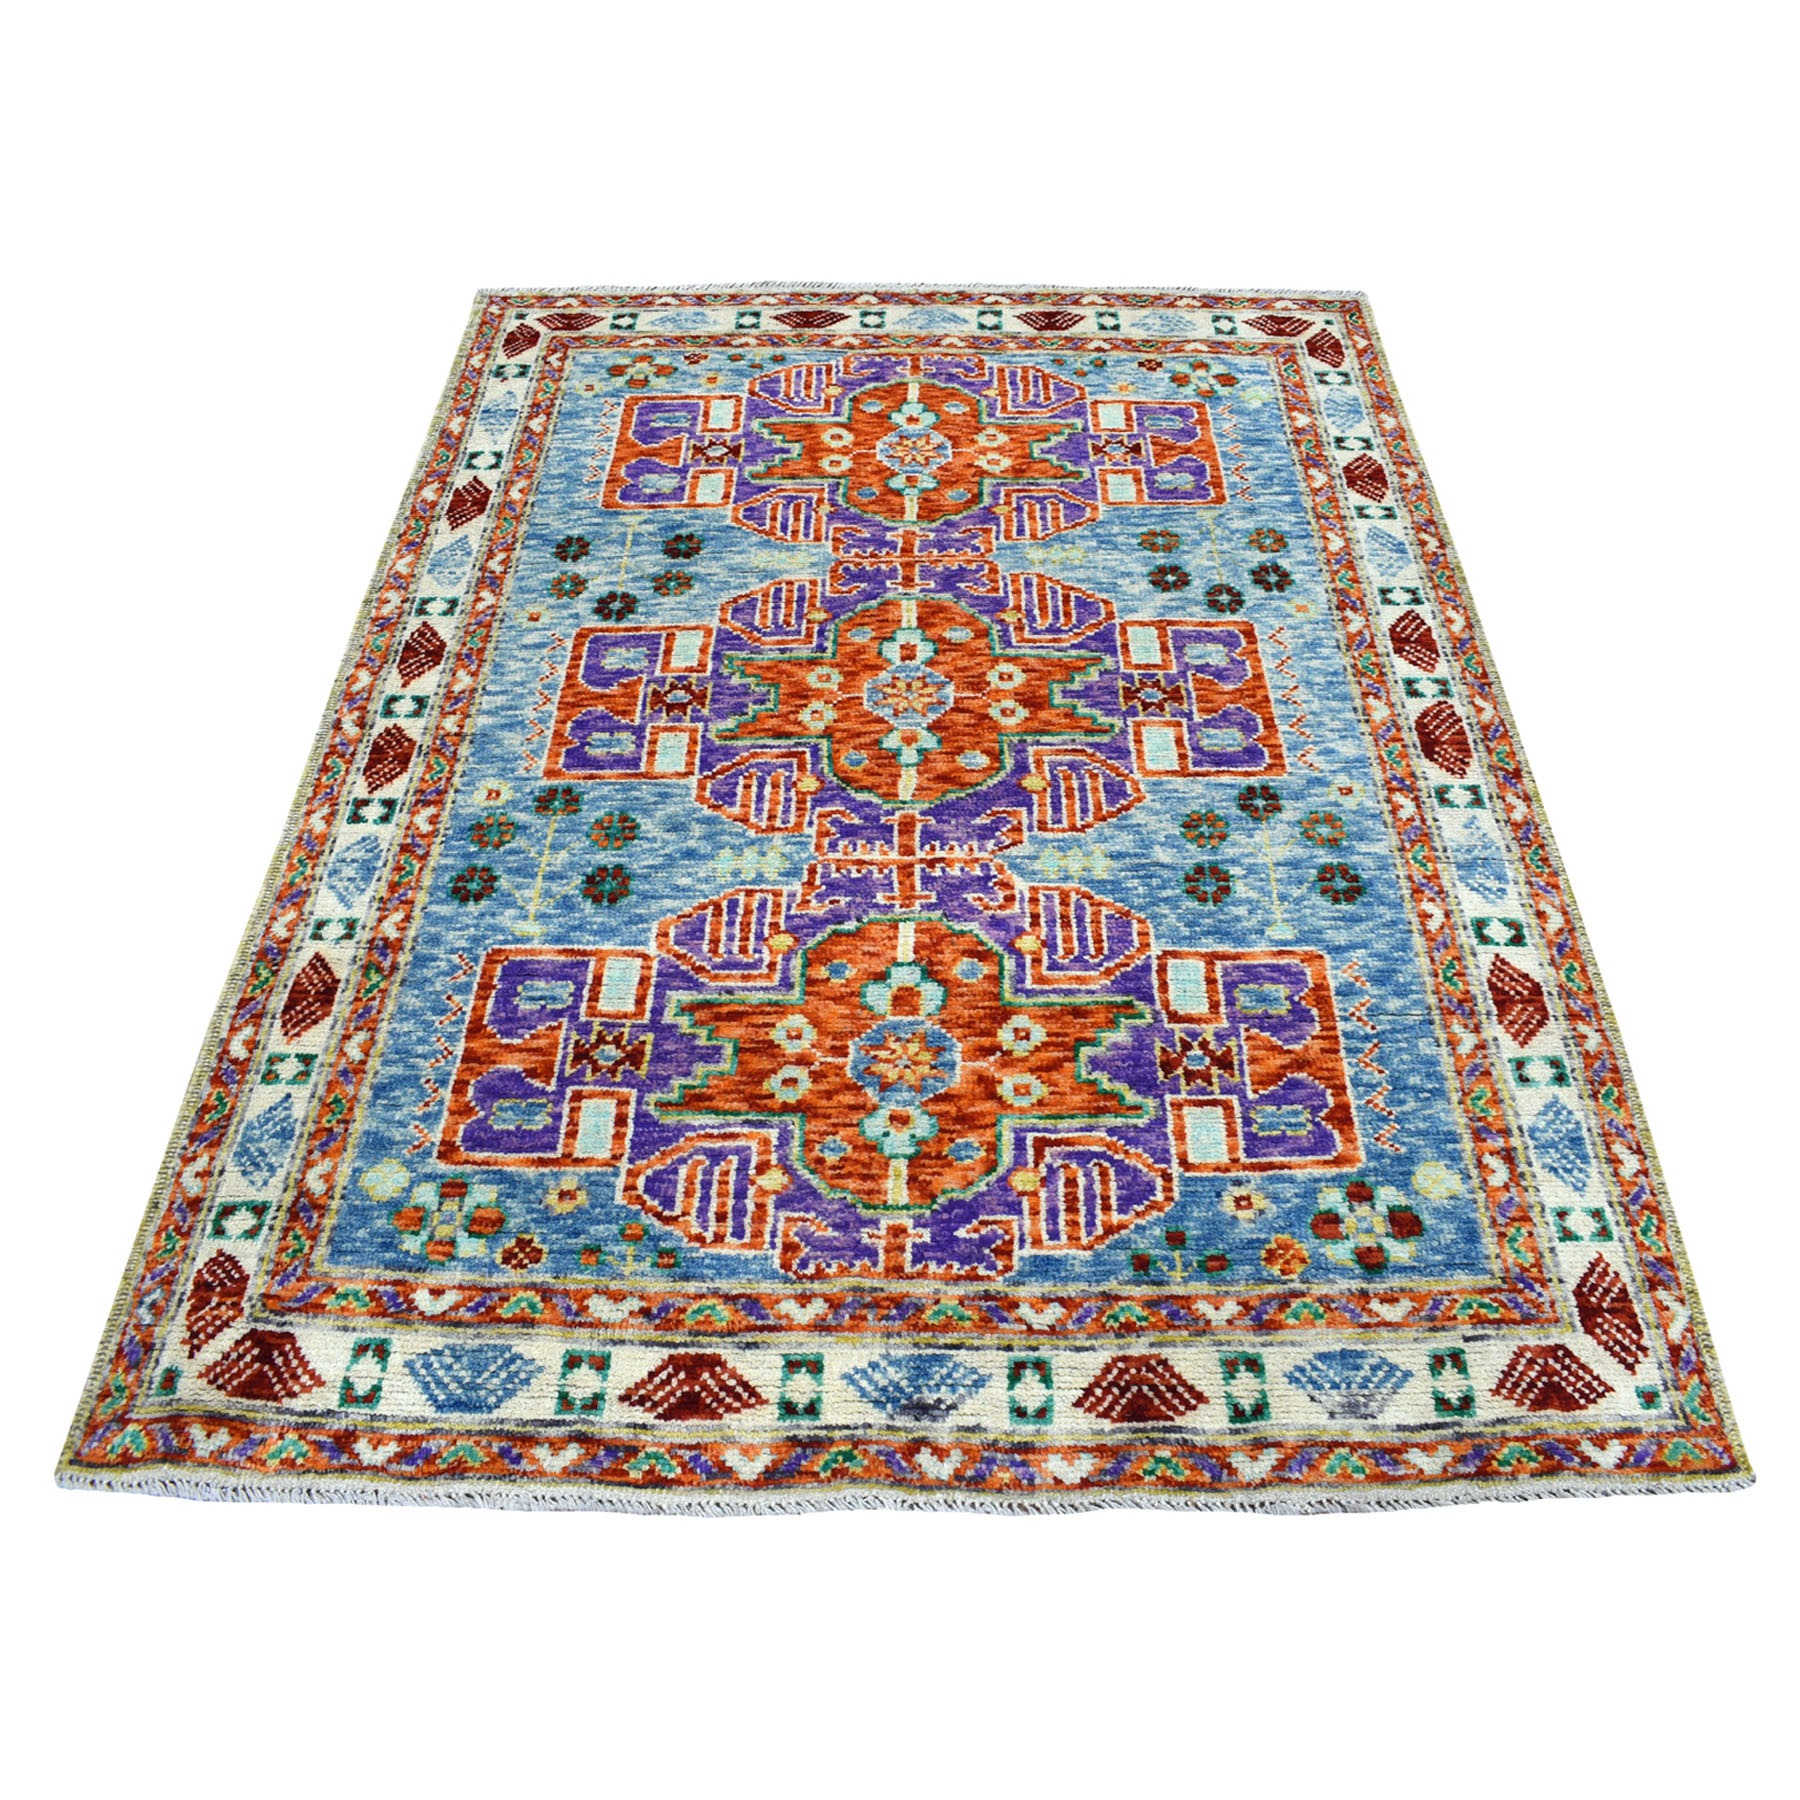 "5'x6'6"" Natural Dyes Colorful Afghan Baluch Geometric Design Hand Knotted 100% Wool Oriental Rug"